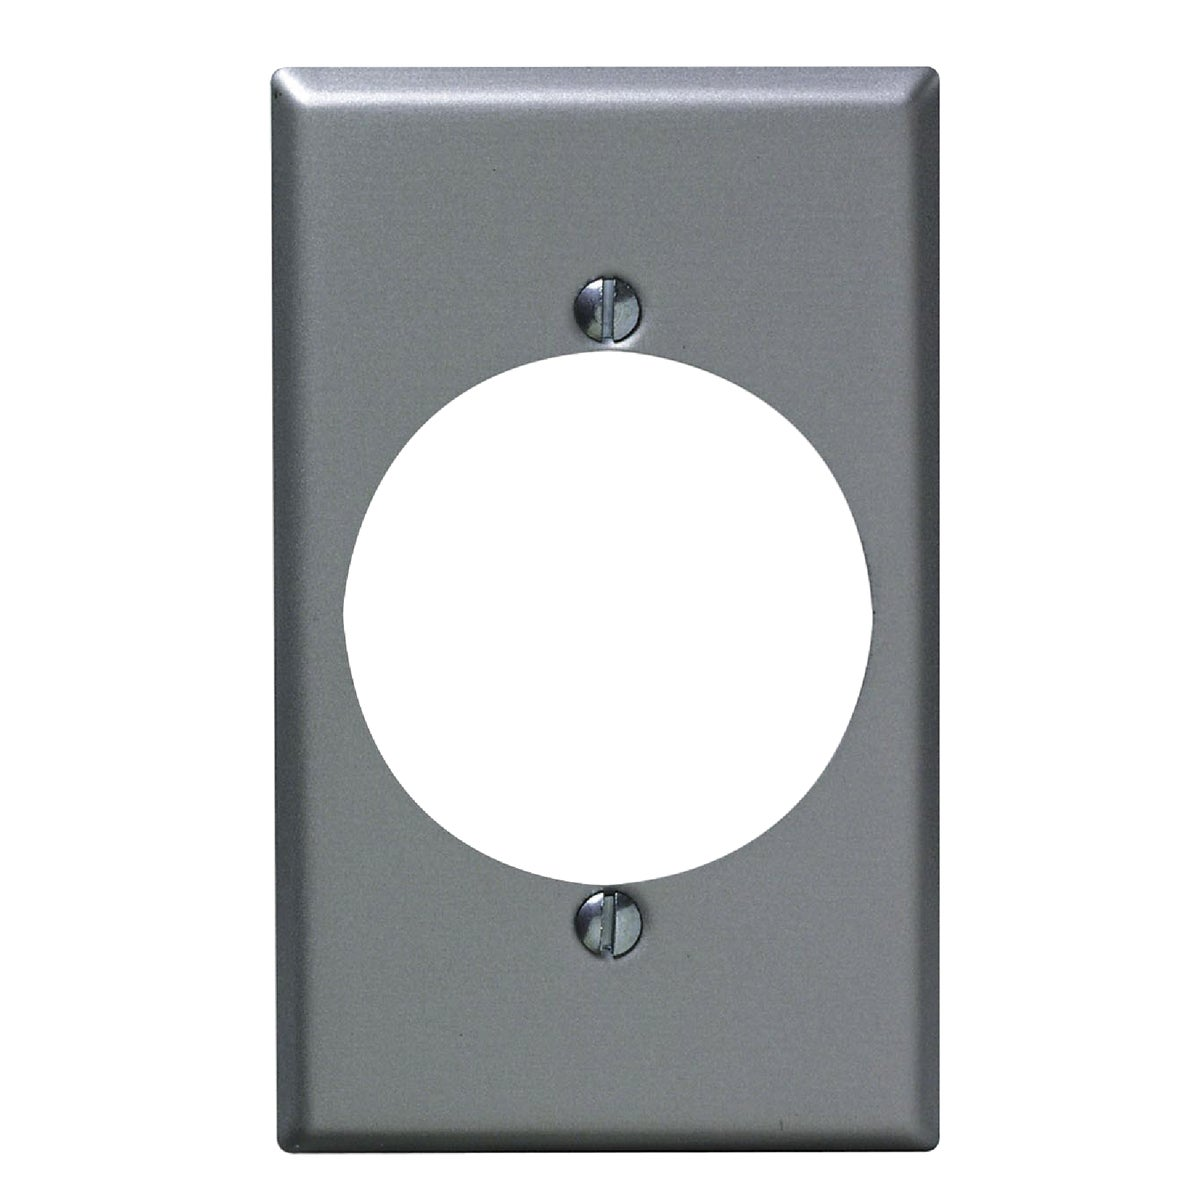 ALUM RANG/DRY WALL PLATE - 83028 by Leviton Mfg Co